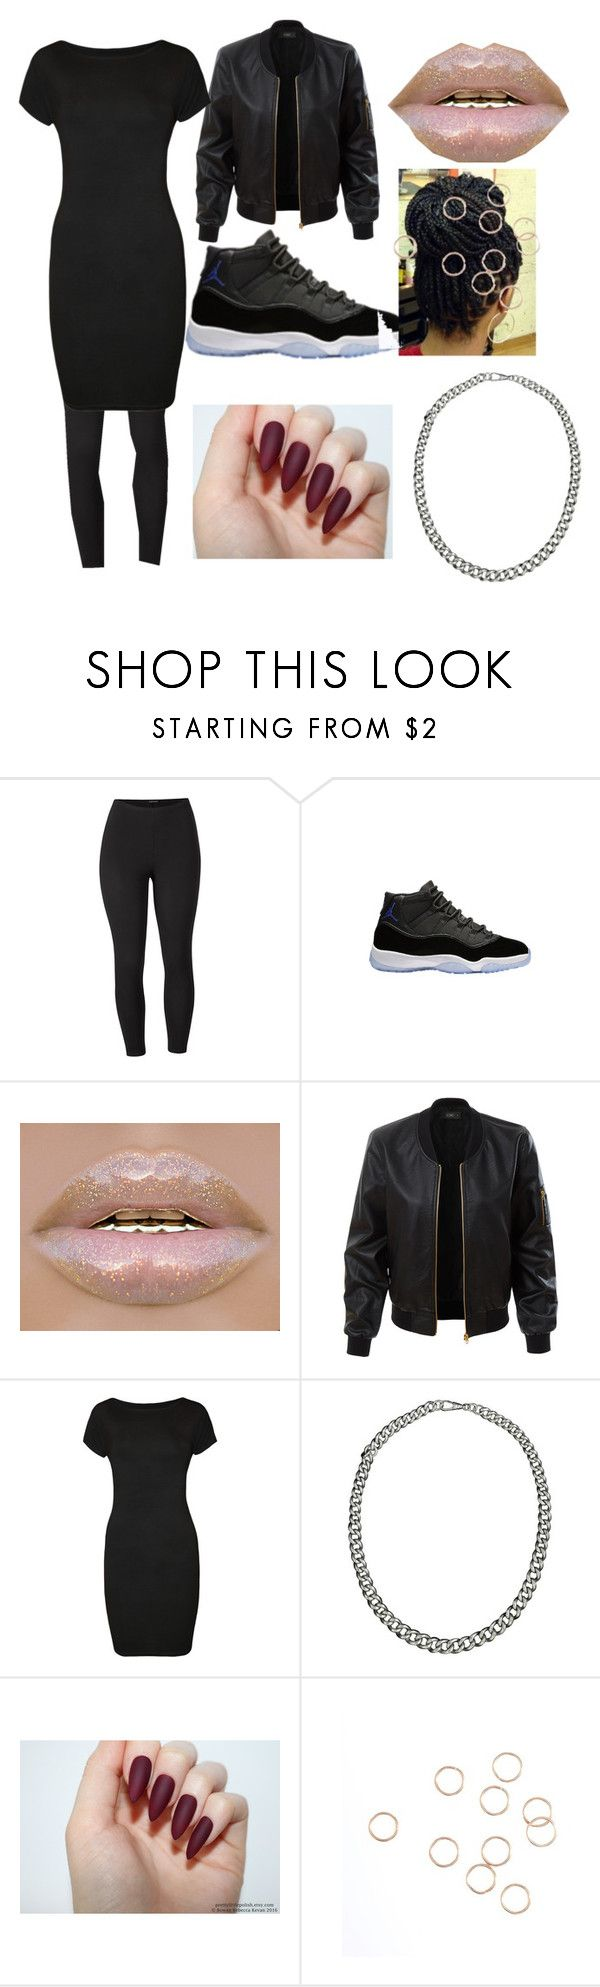 """Another Birthday Outfit"" by big-brown-eyes04 on Polyvore featuring Venus, LE3NO, WearAll and plus size clothing"